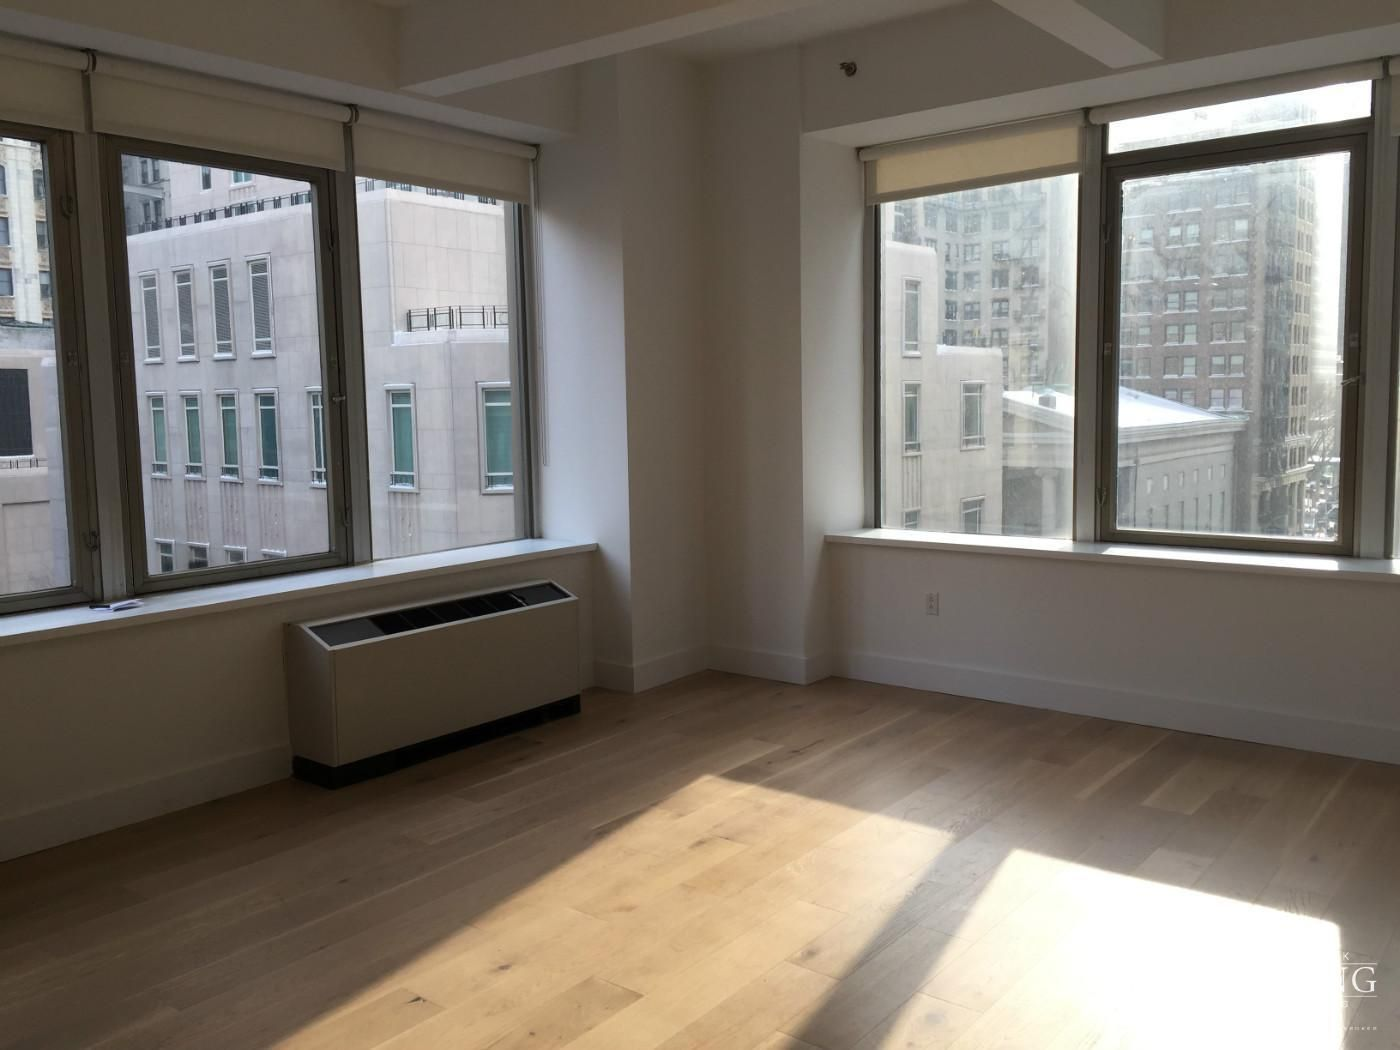 3 Bedrooms 1 Bathroom Apartment For Sale In Tribeca Apartment For Rent Nyc Apartments For Rent Bedroom Apartment